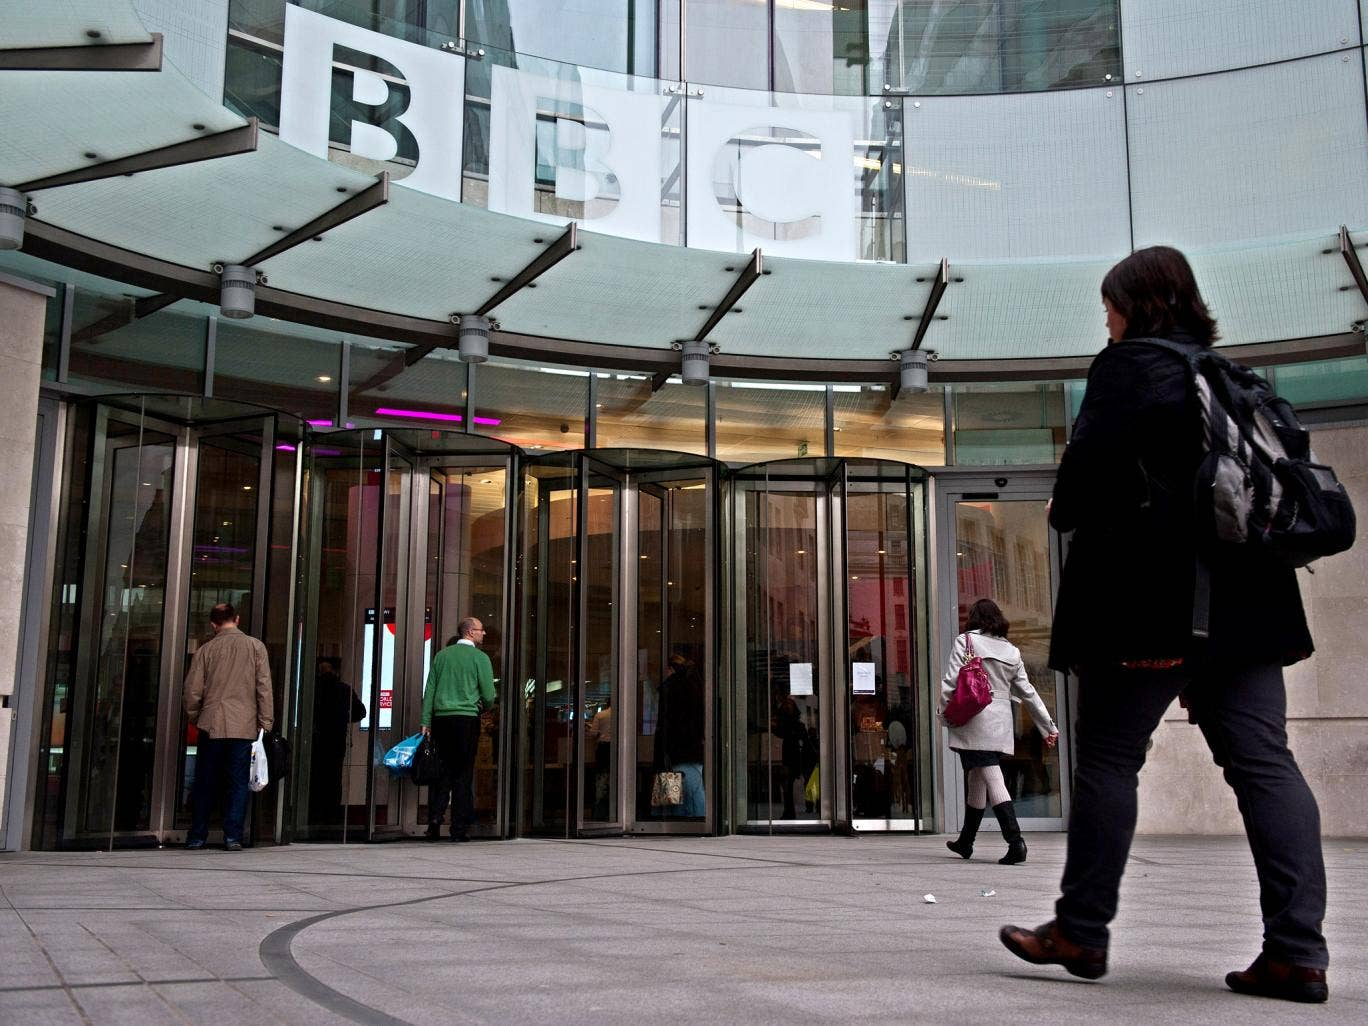 850 members of BBC staff came forward to raise their concerns